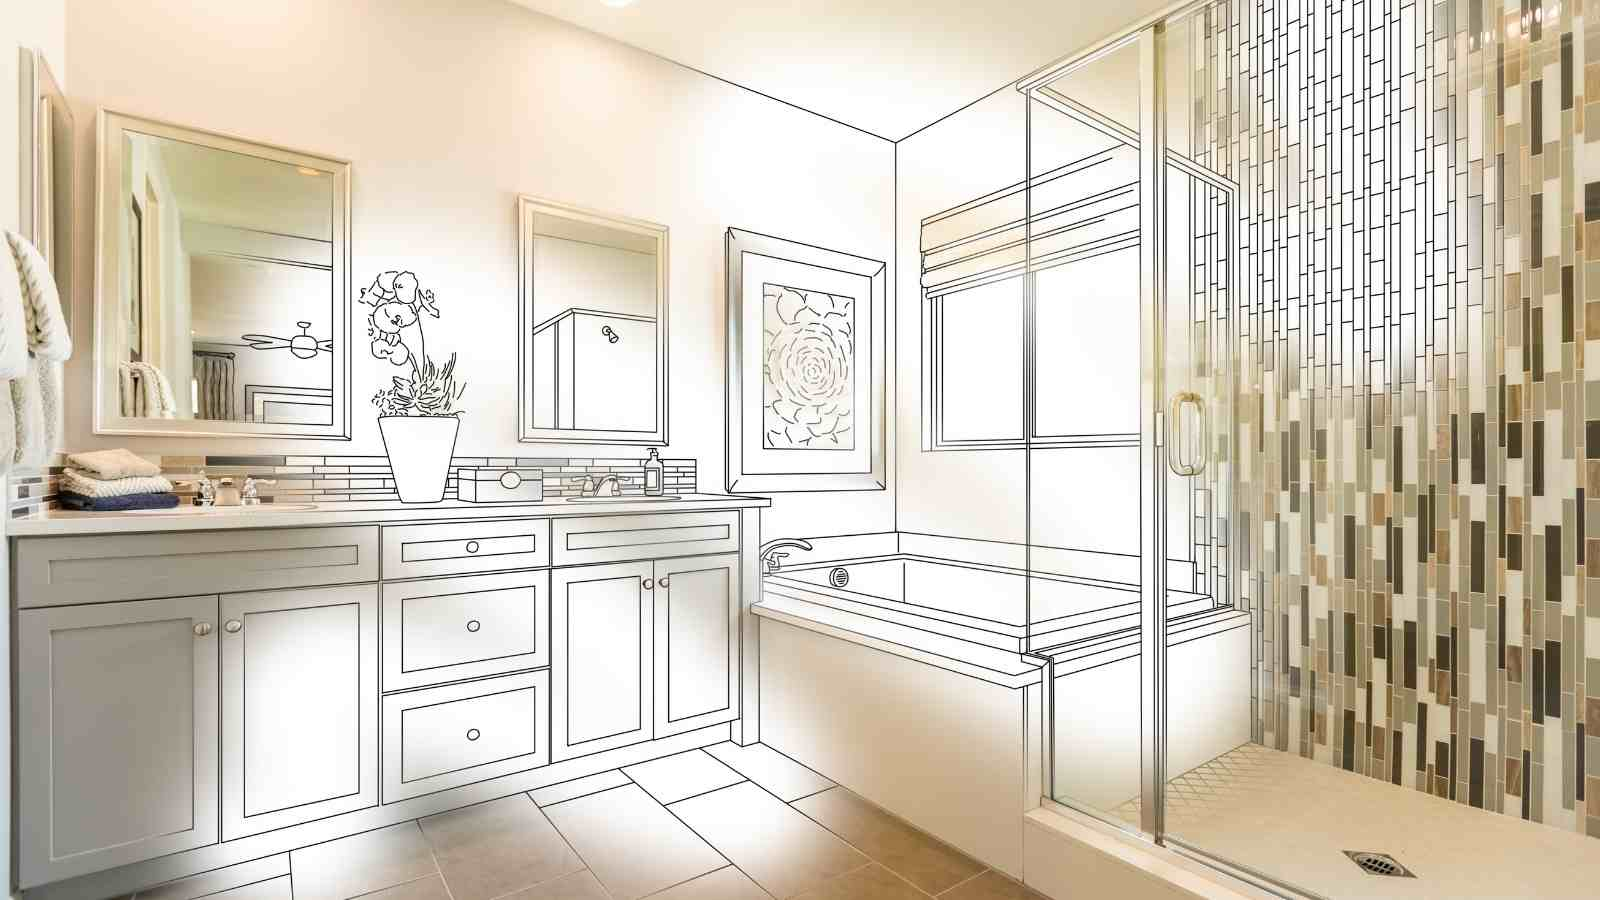 diy bathroom remodel tips 35 amazing bathroom remodel diy ideas that give a stunning makeover to your bathroom